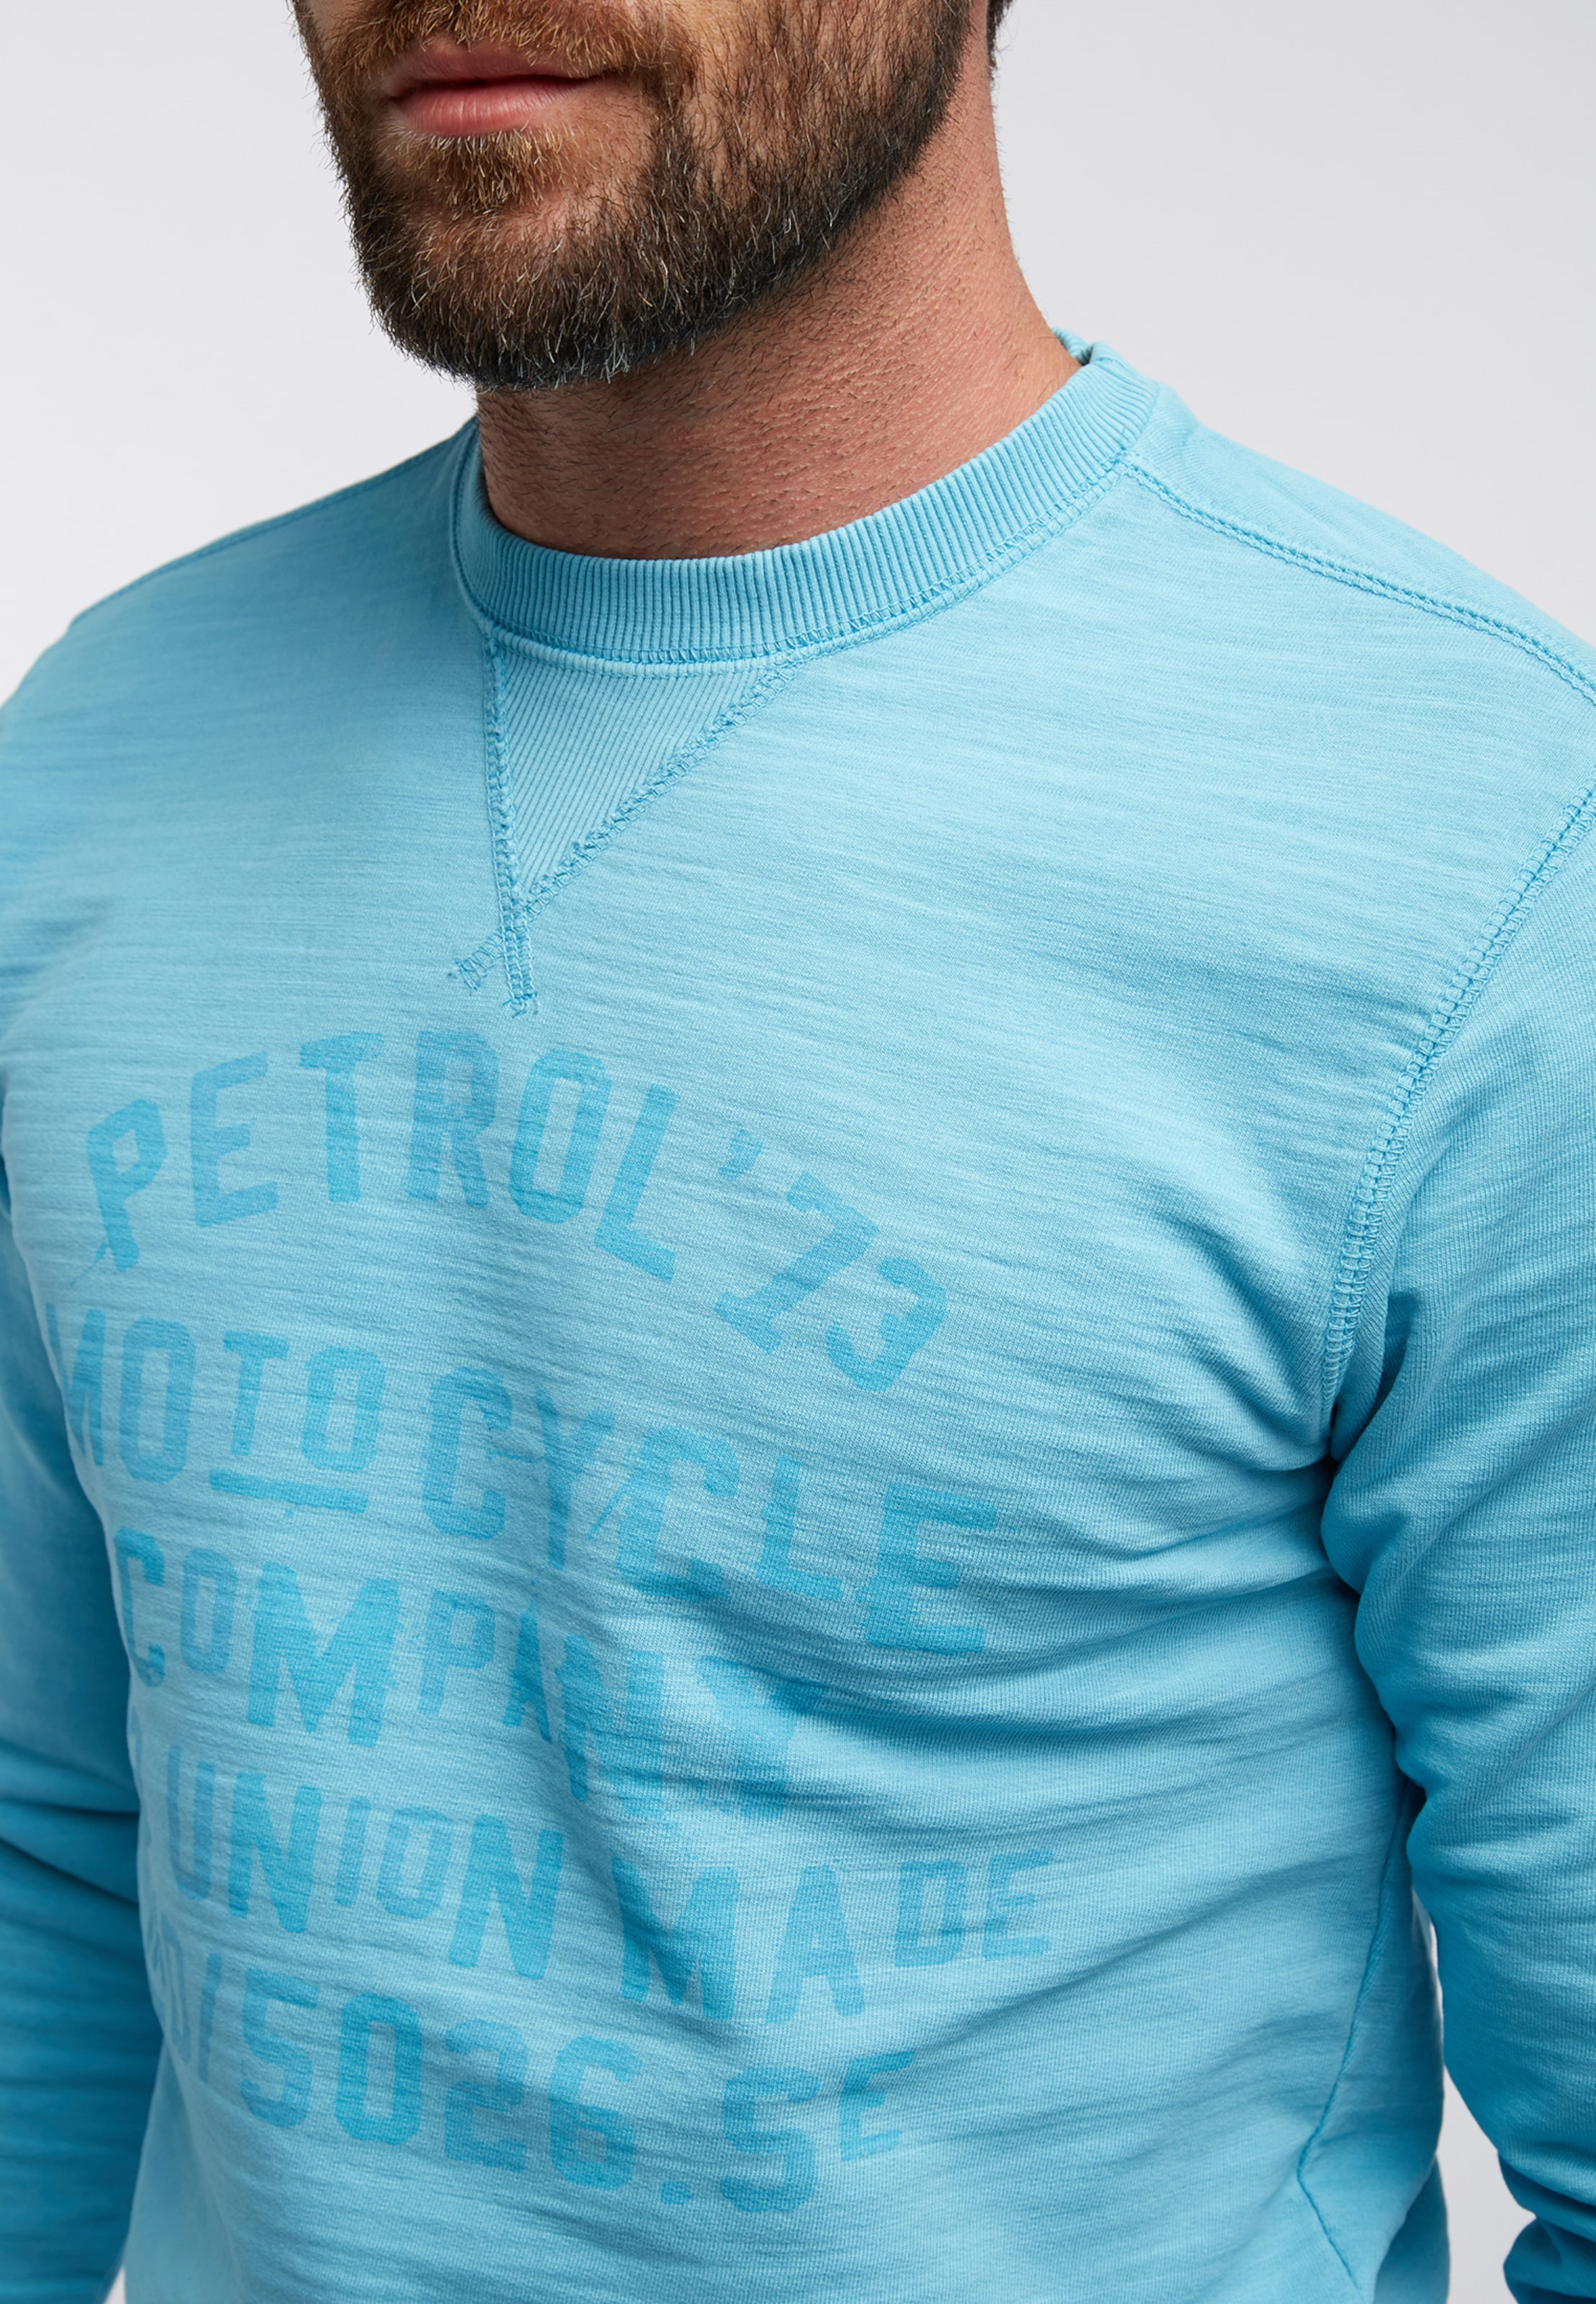 shirt Industries En Sweat Bleu Petrol Clair eWIY29EHDb